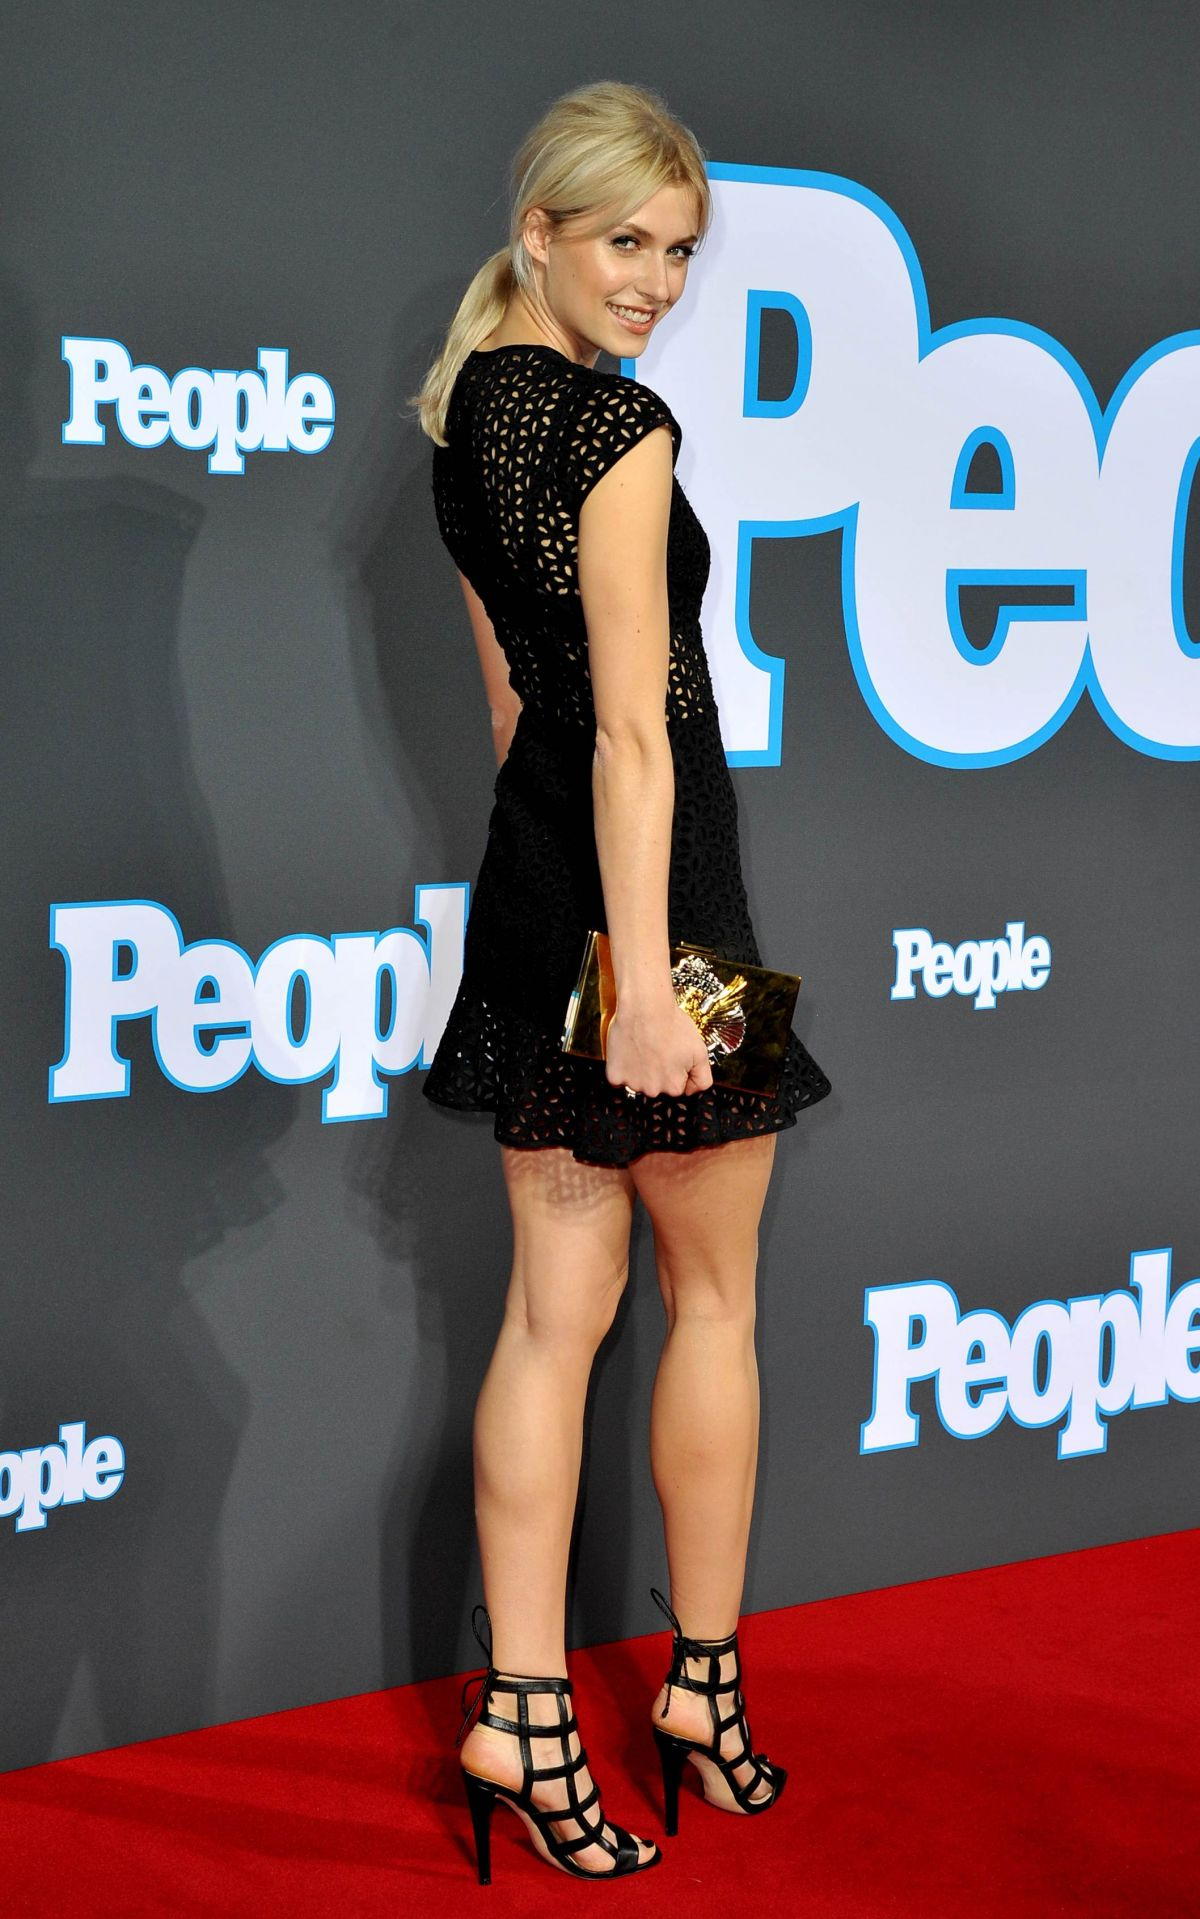 LENA GERCKE at People Magazin Launch Party in Berlin